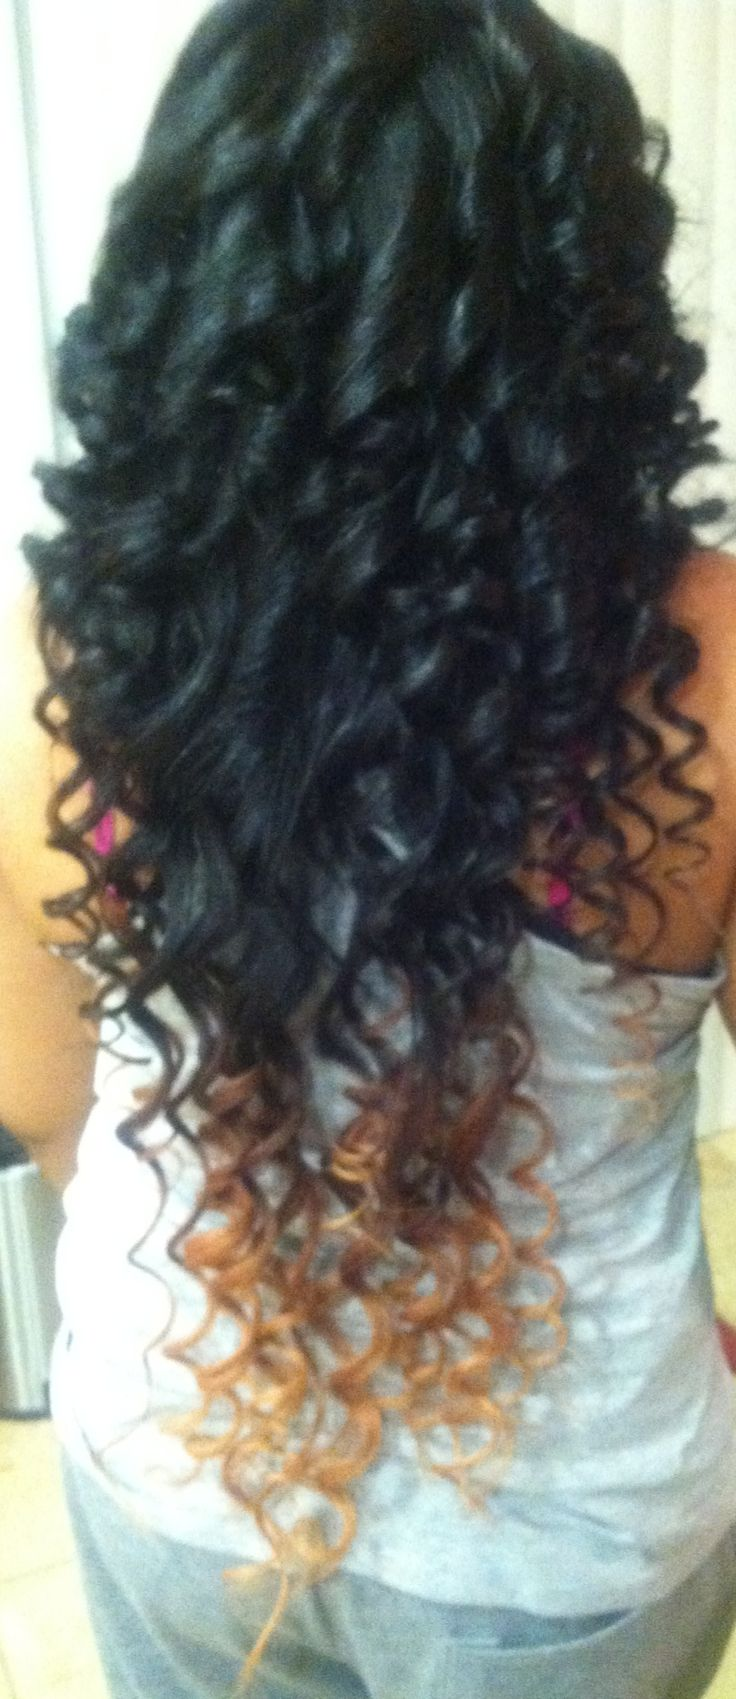 Wondrous 1000 Images About Wand Curls On Pinterest Wand Curls Hairstyles For Men Maxibearus